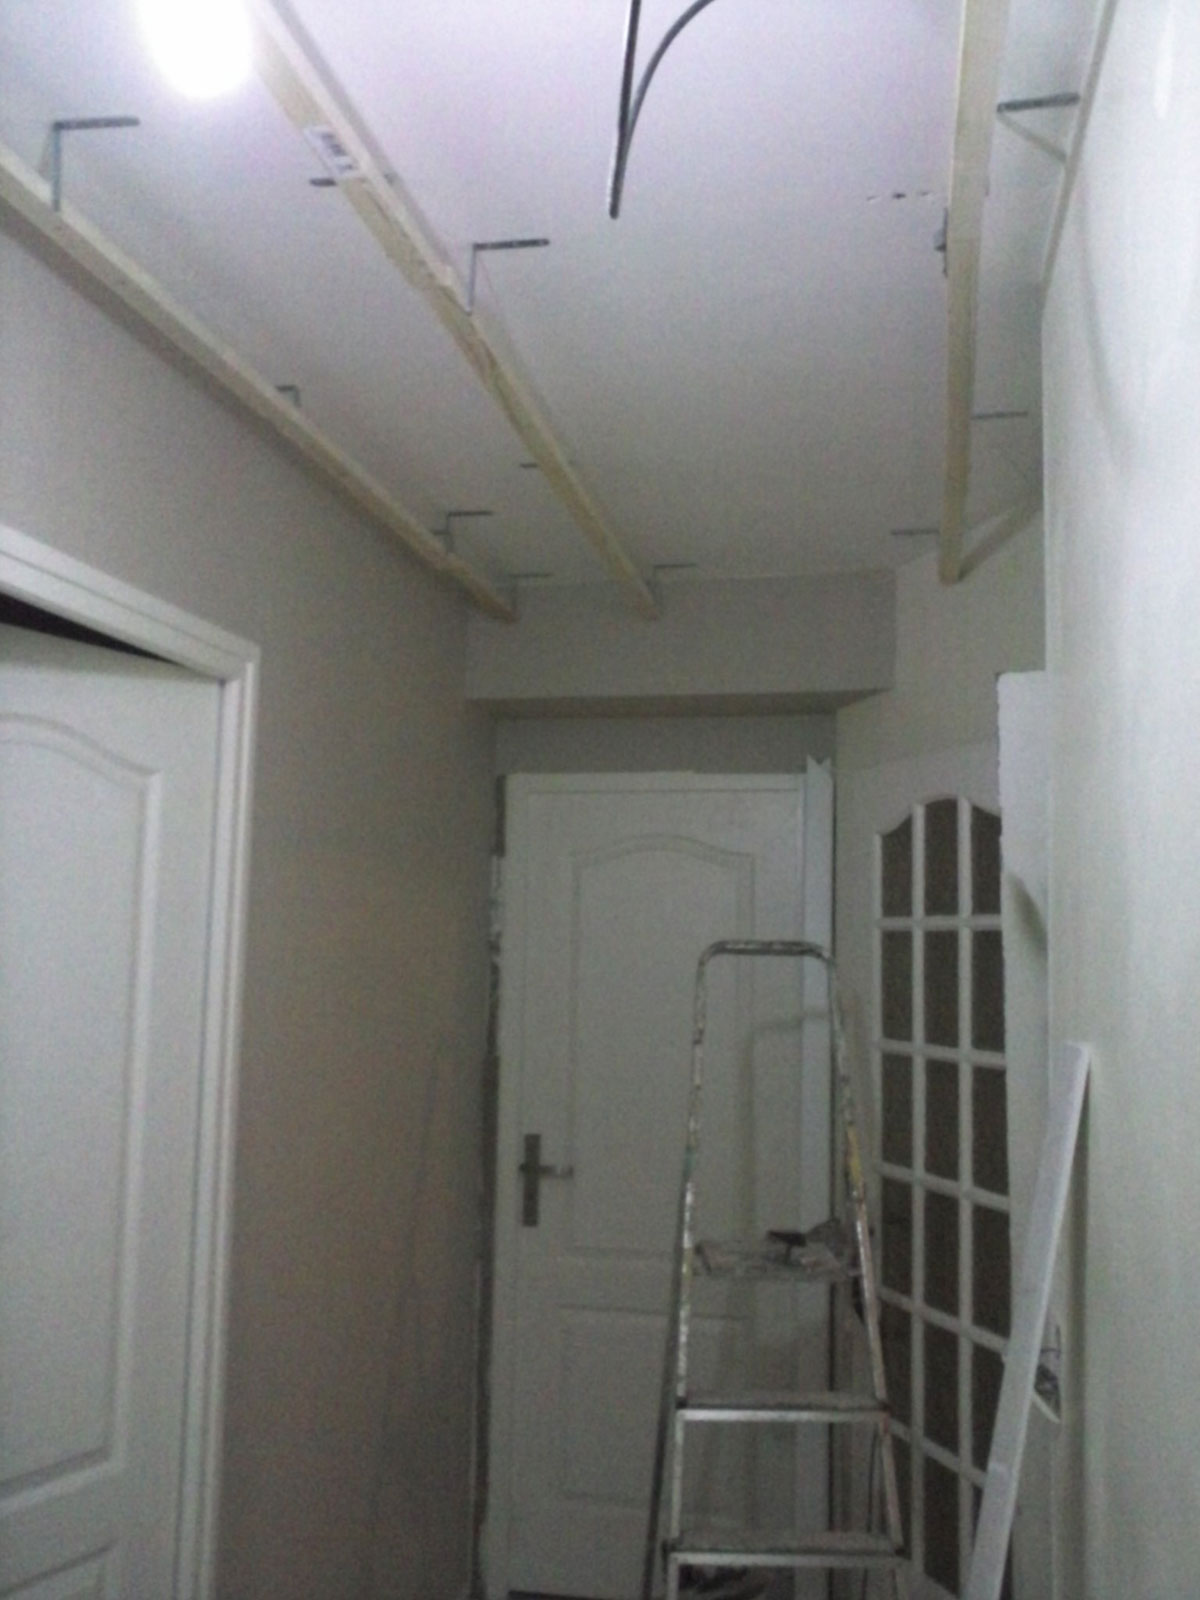 R novation de ma maison transformation d 39 un couloir for Comment poncer un mur peint